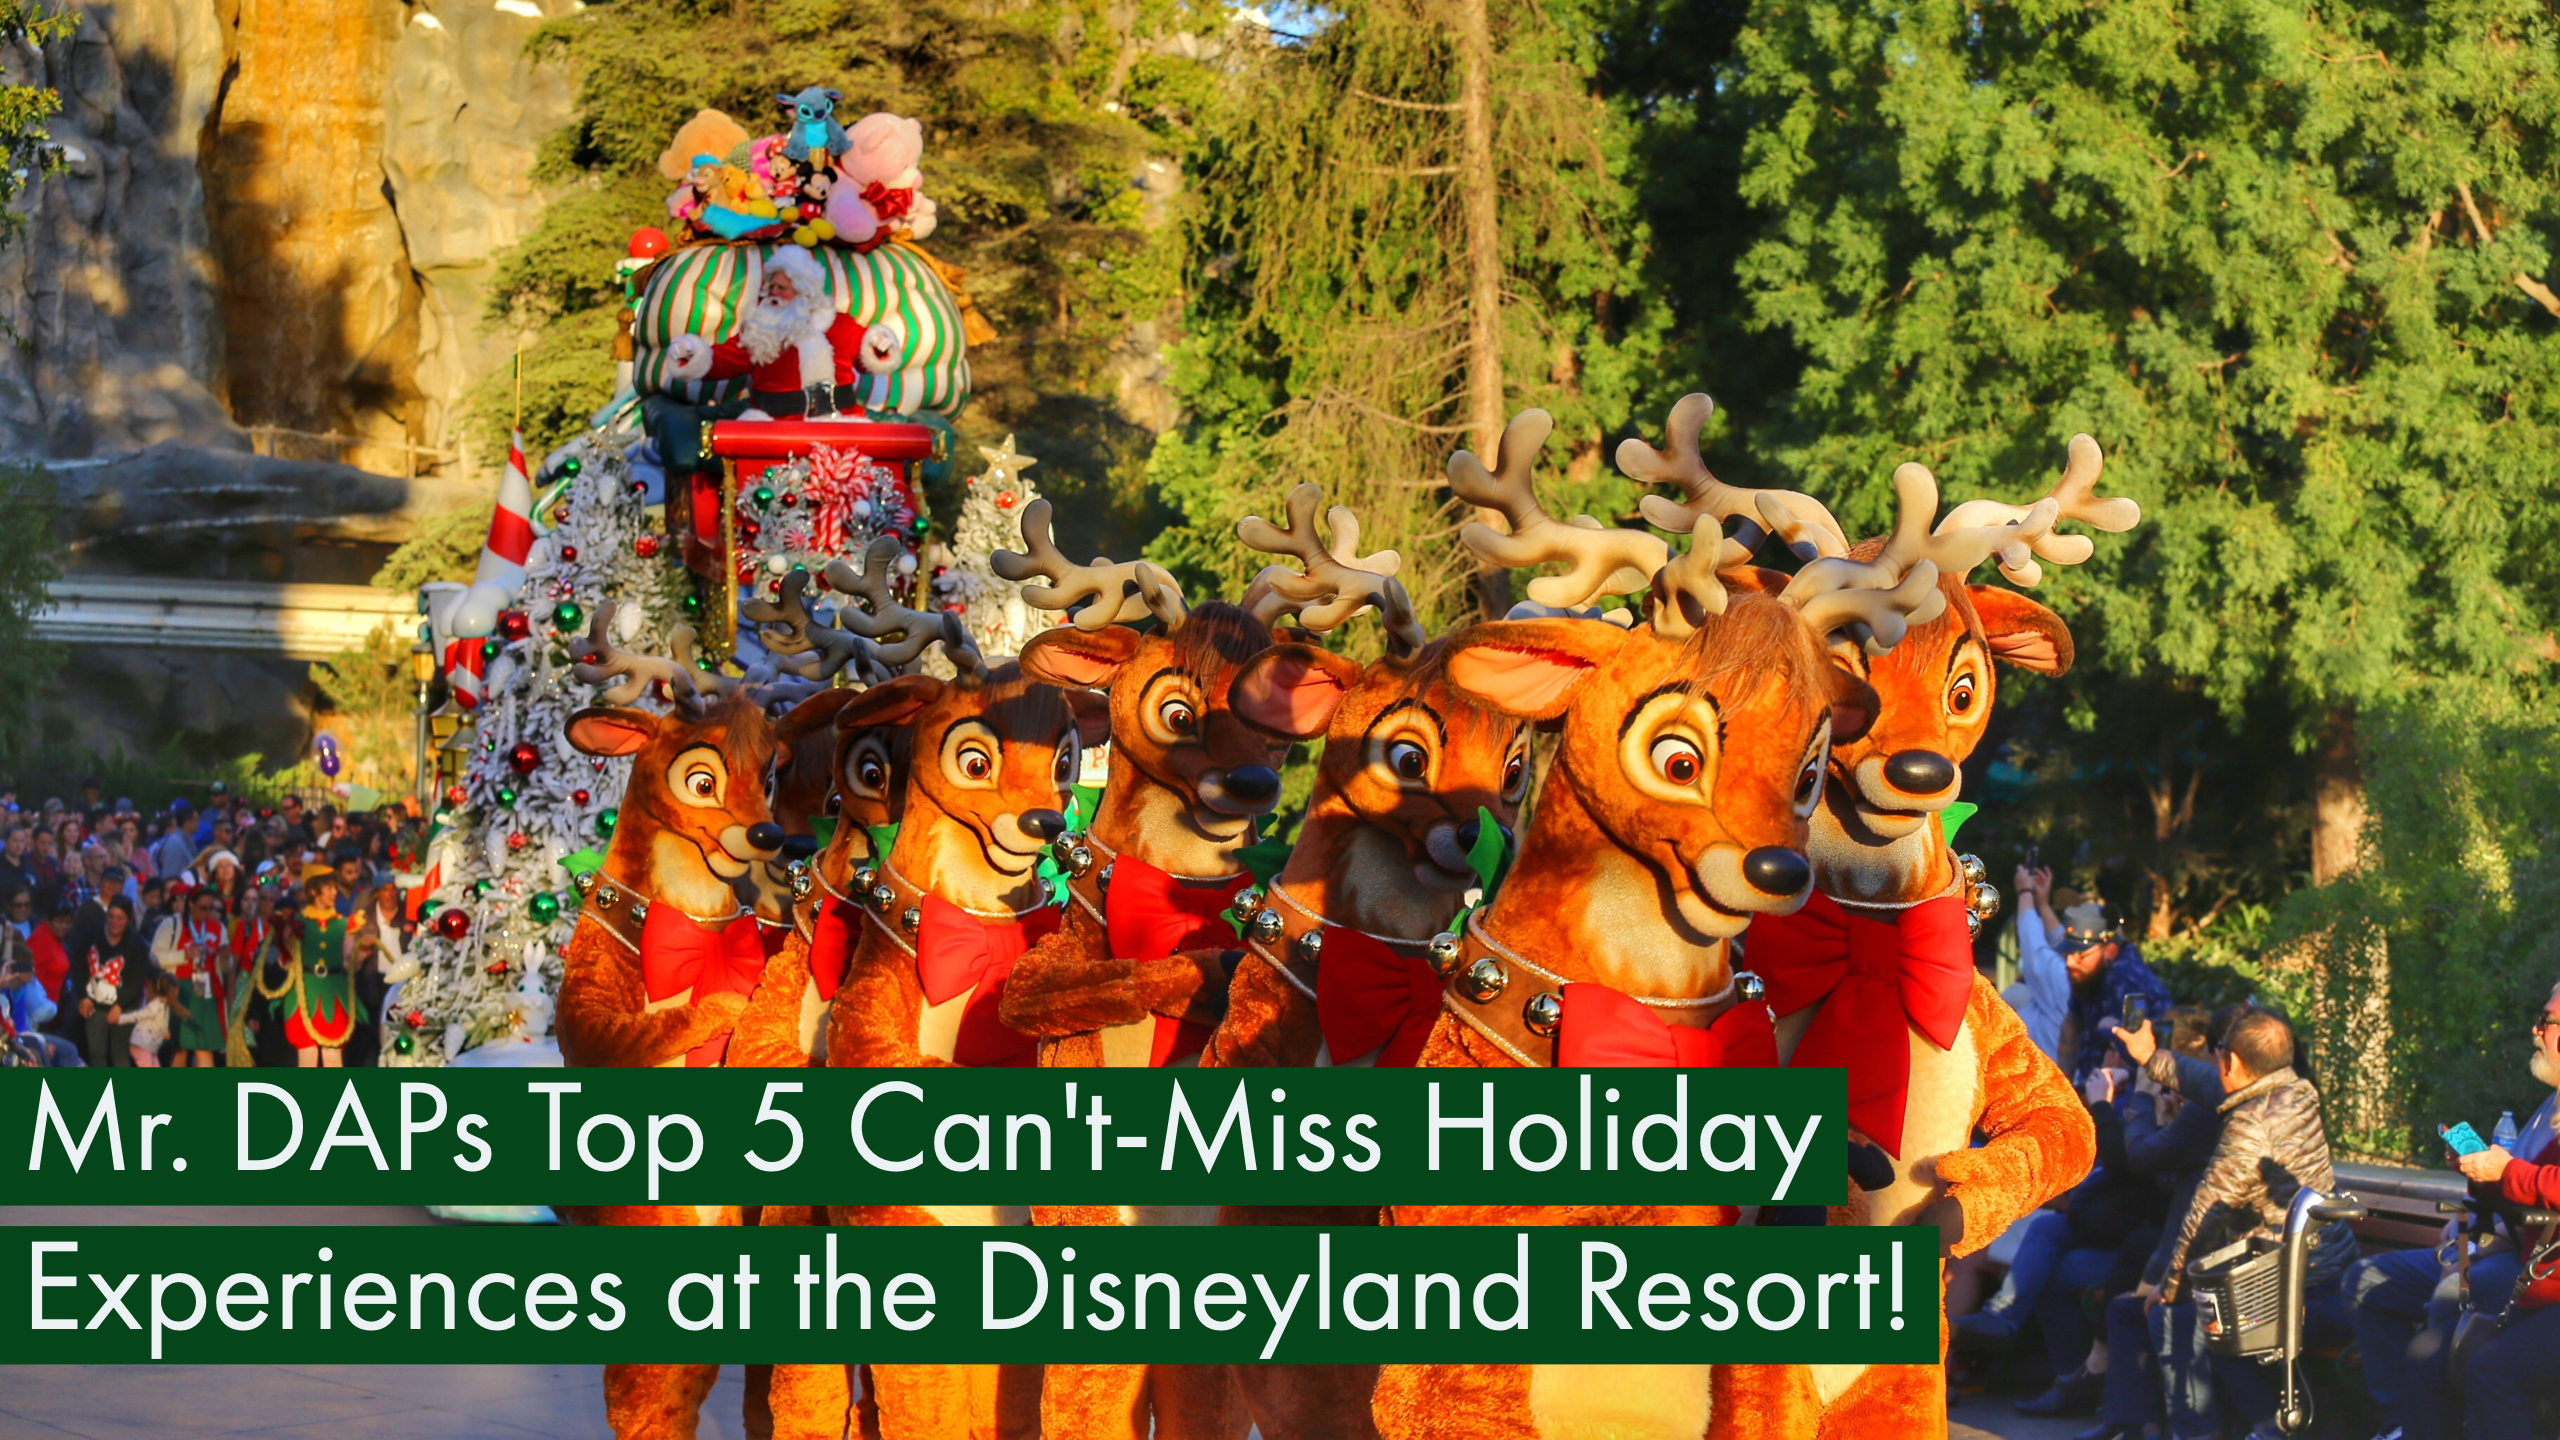 Mr. DAPs Top 5 Can't-Miss Holiday Experiences at the Disneyland Resort!